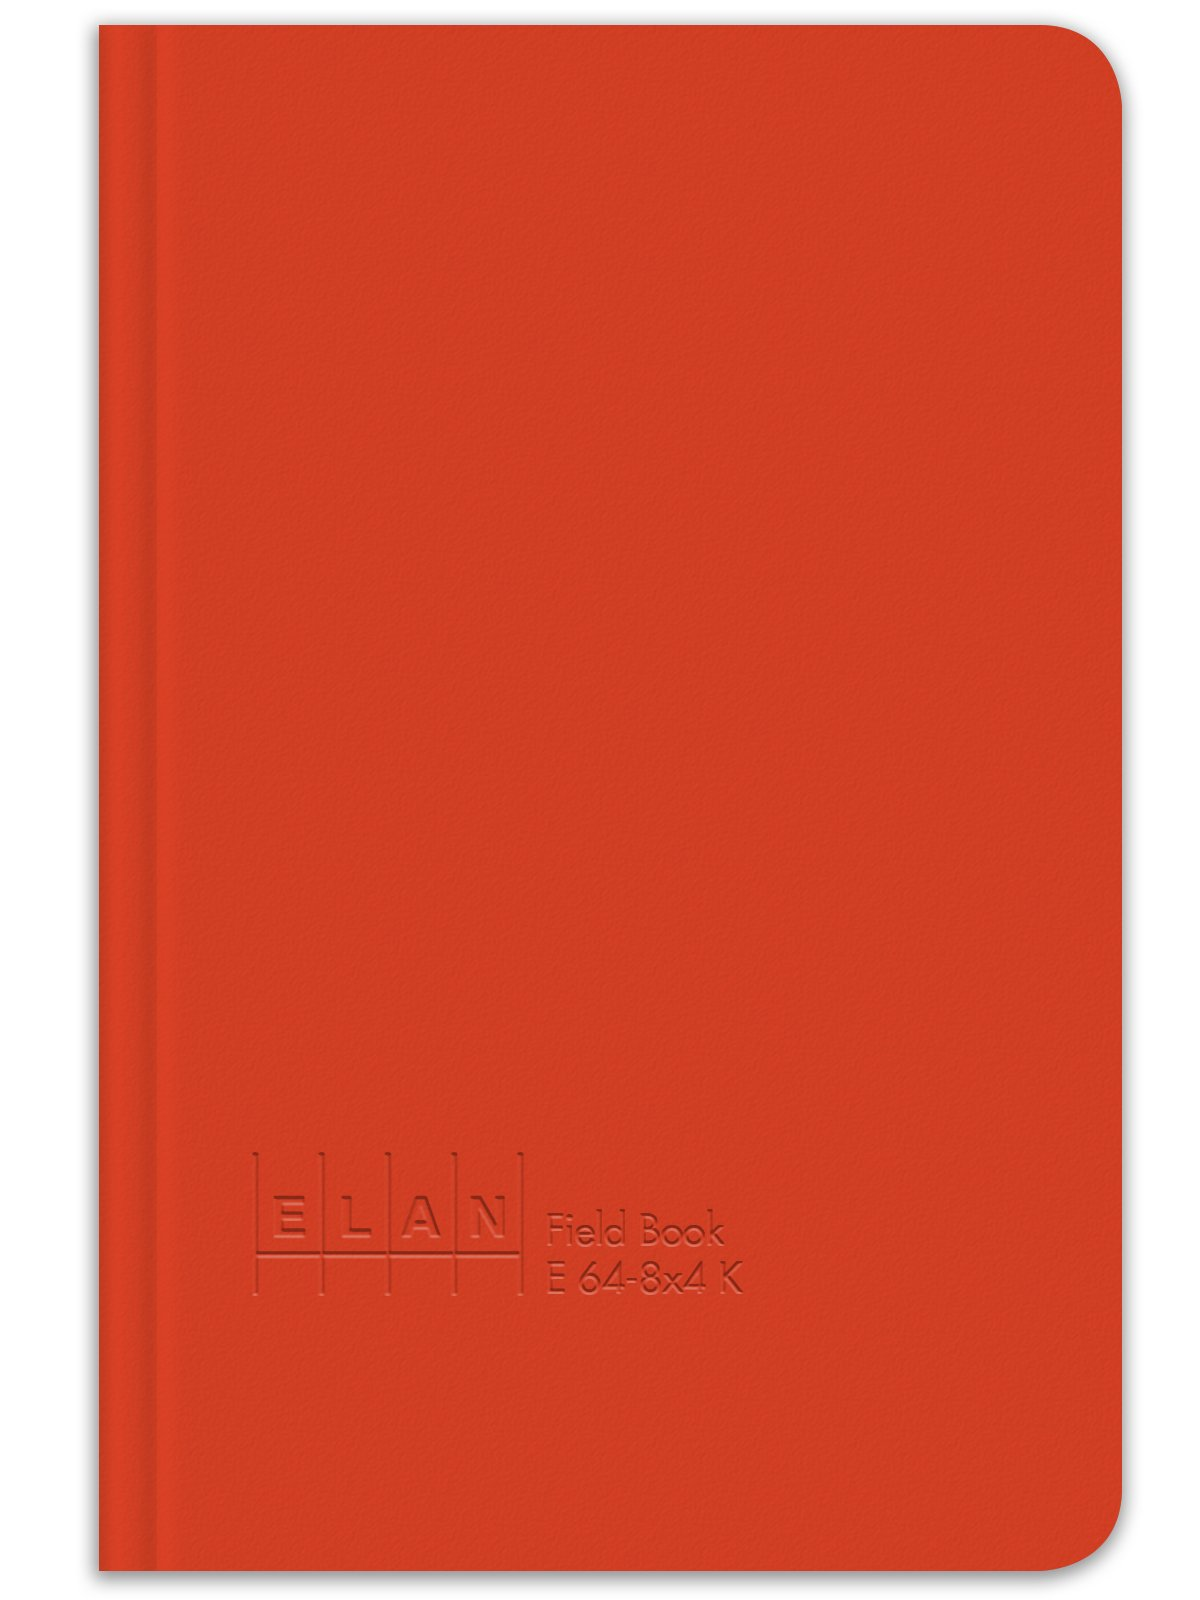 Elan Publishing Company E64-8x4K King Size Field Surveying Book 6 x 9, Bright Orange Cover (Pack of 24)